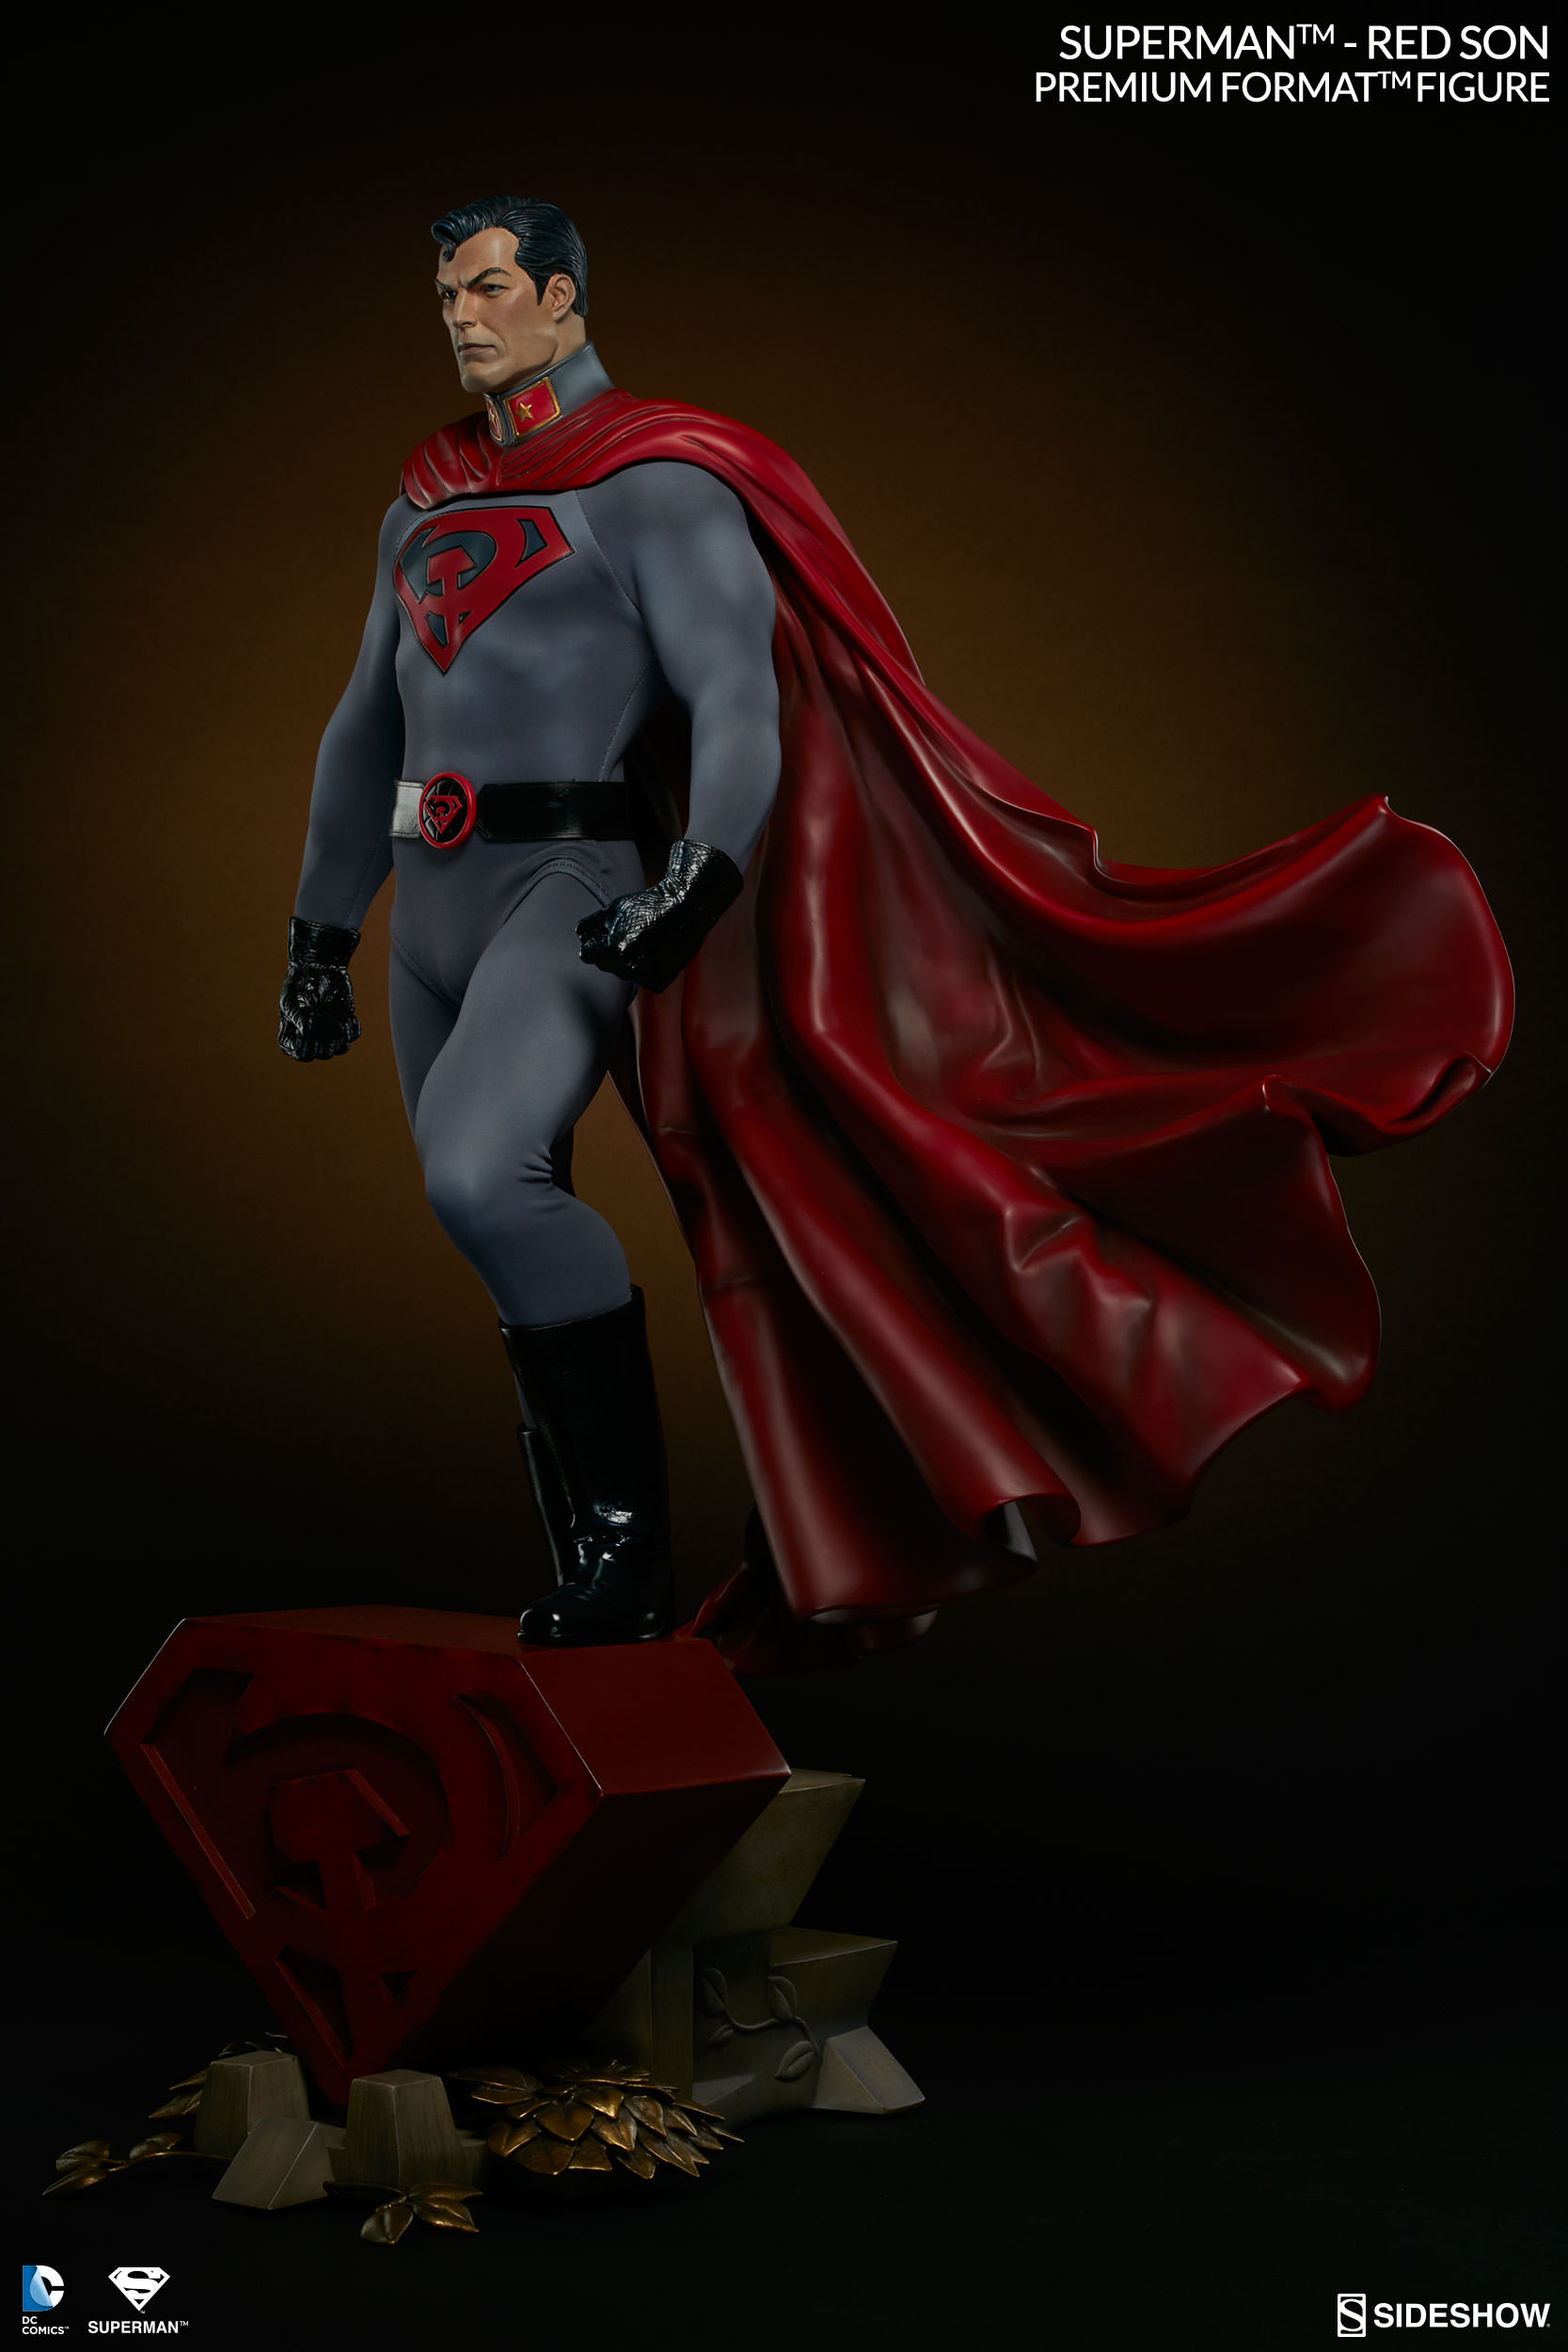 Sideshow Dc Comics Superman Red Son Premium Format Figure 1 4 Animetoys